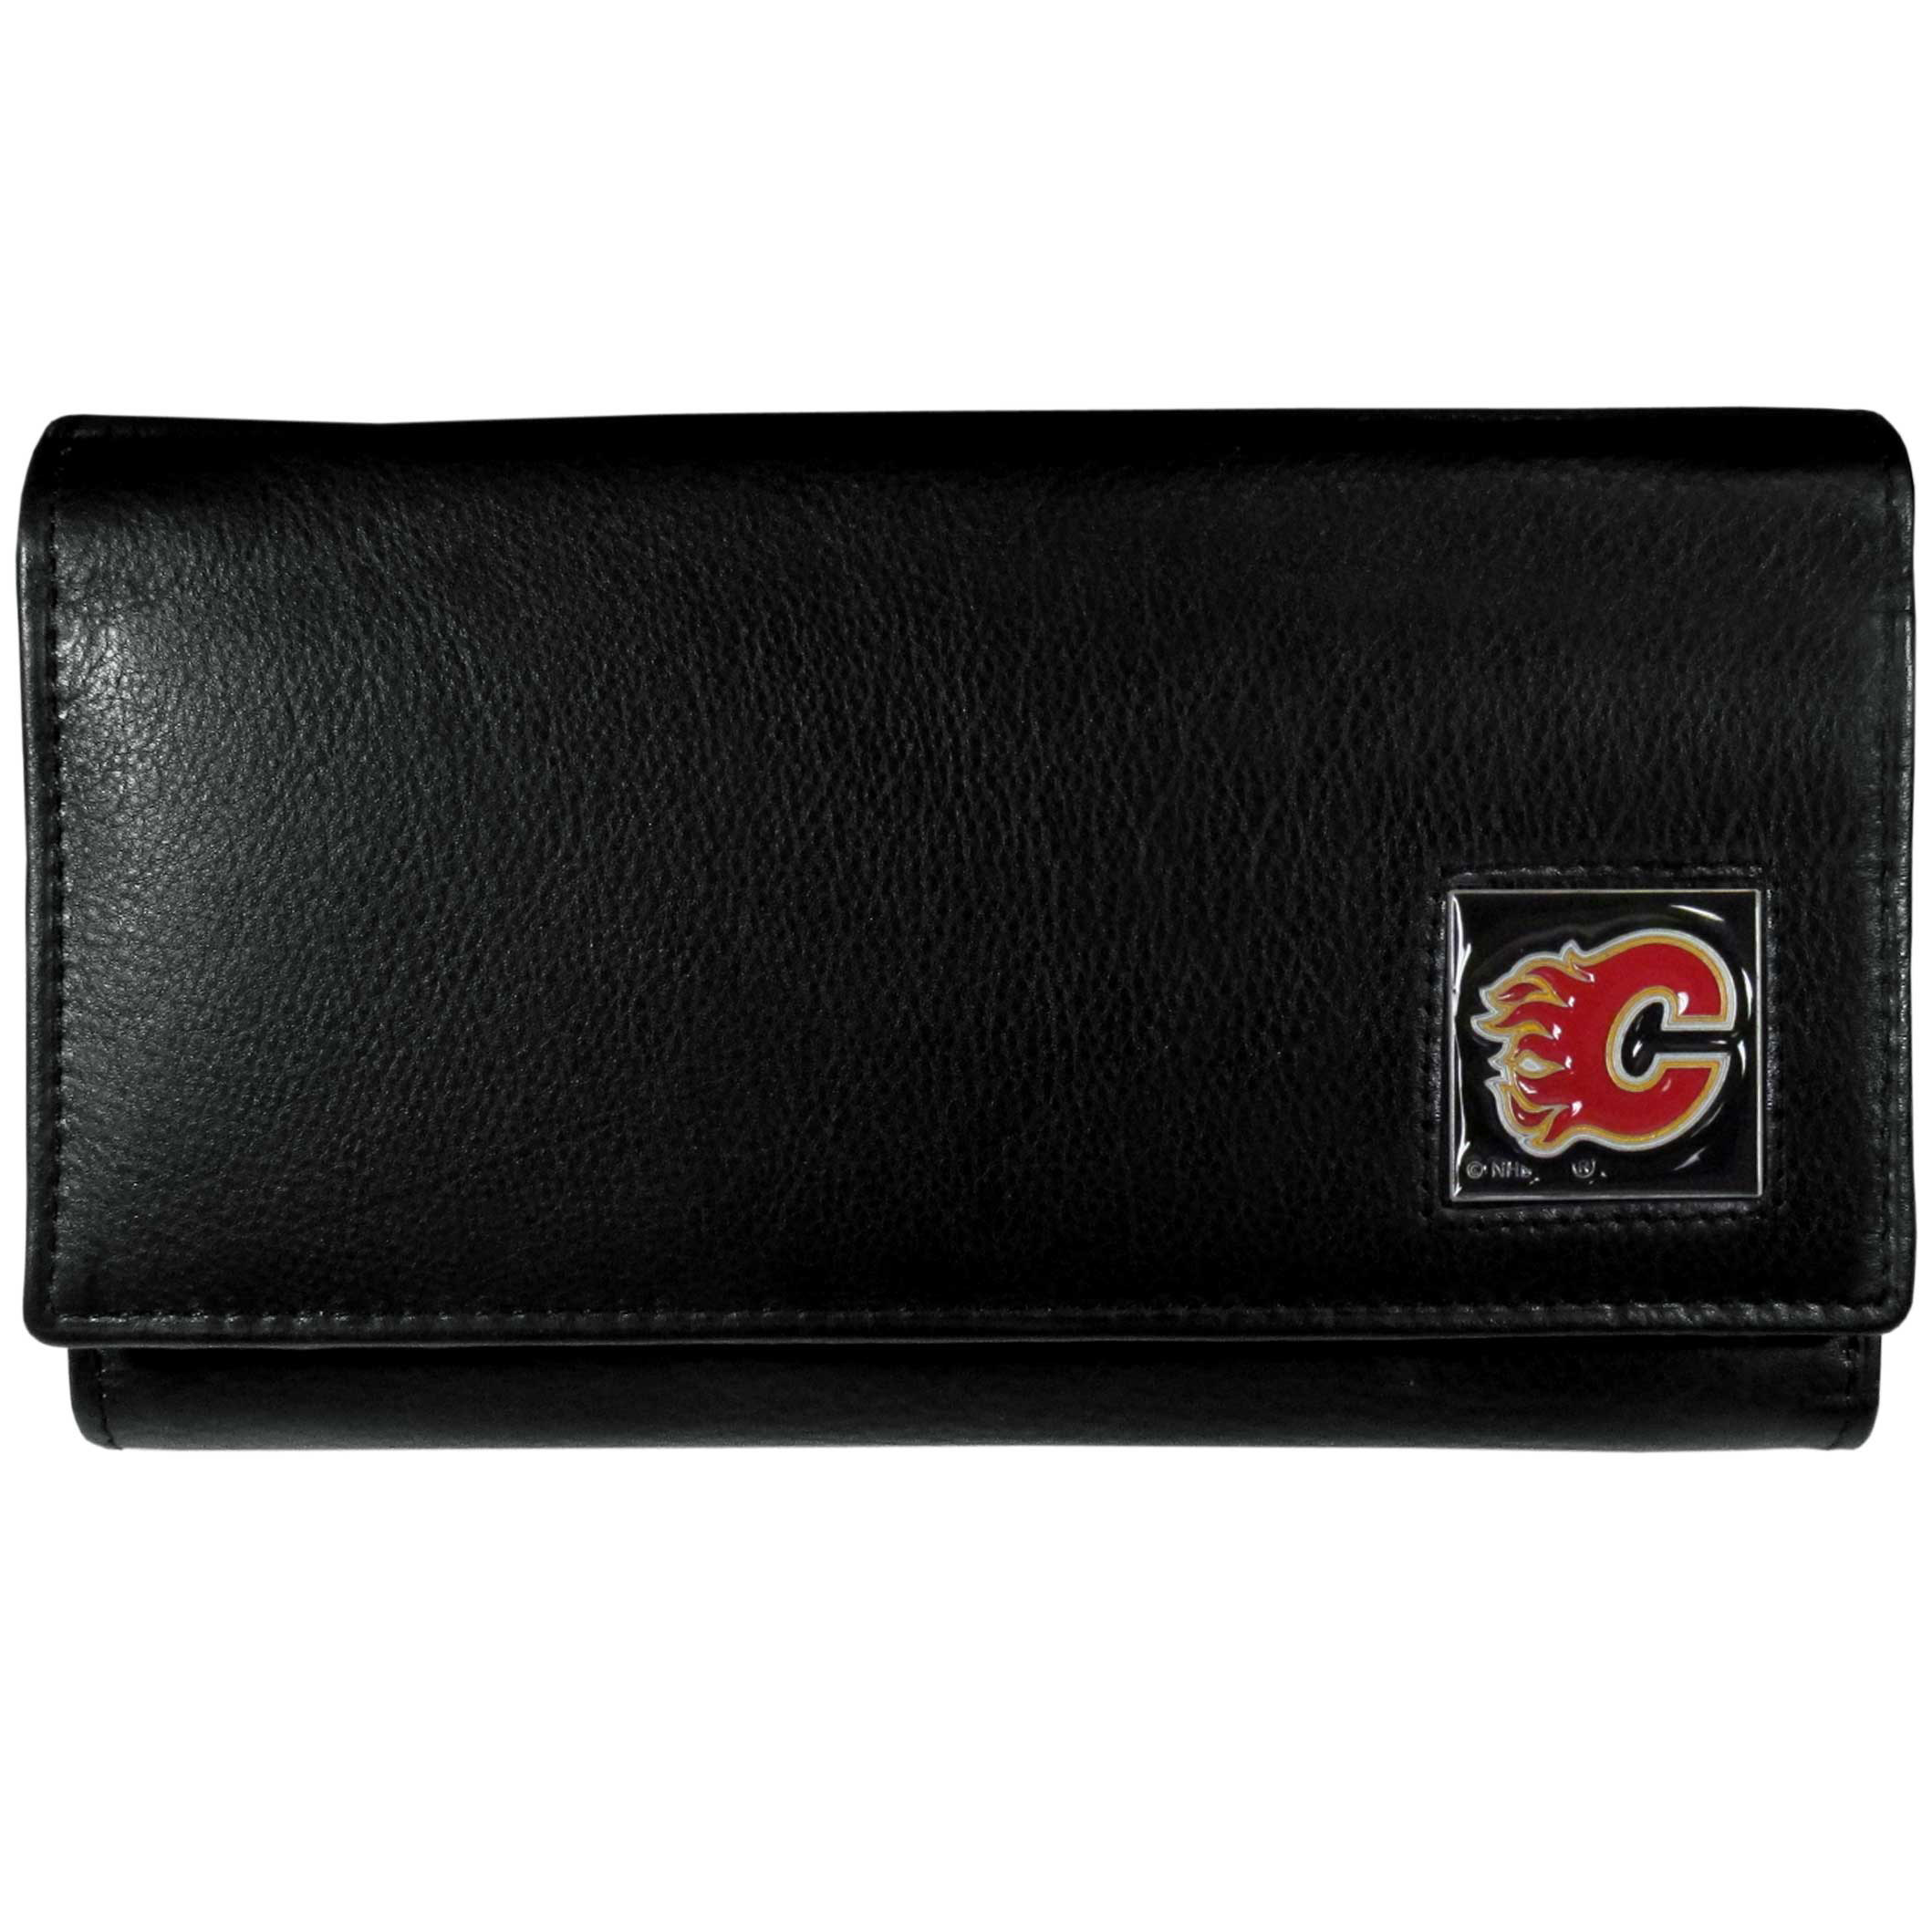 Calgary Flames® Leather Women's Wallet - This genuine leather women's pocketbook features 9 credit card slots, a windowed ID slot, spacious front pocket, inner pocket and zippered coin pocket. The front of the pocketbook has a hand painted metal square with the Calgary Flames® primary logo.